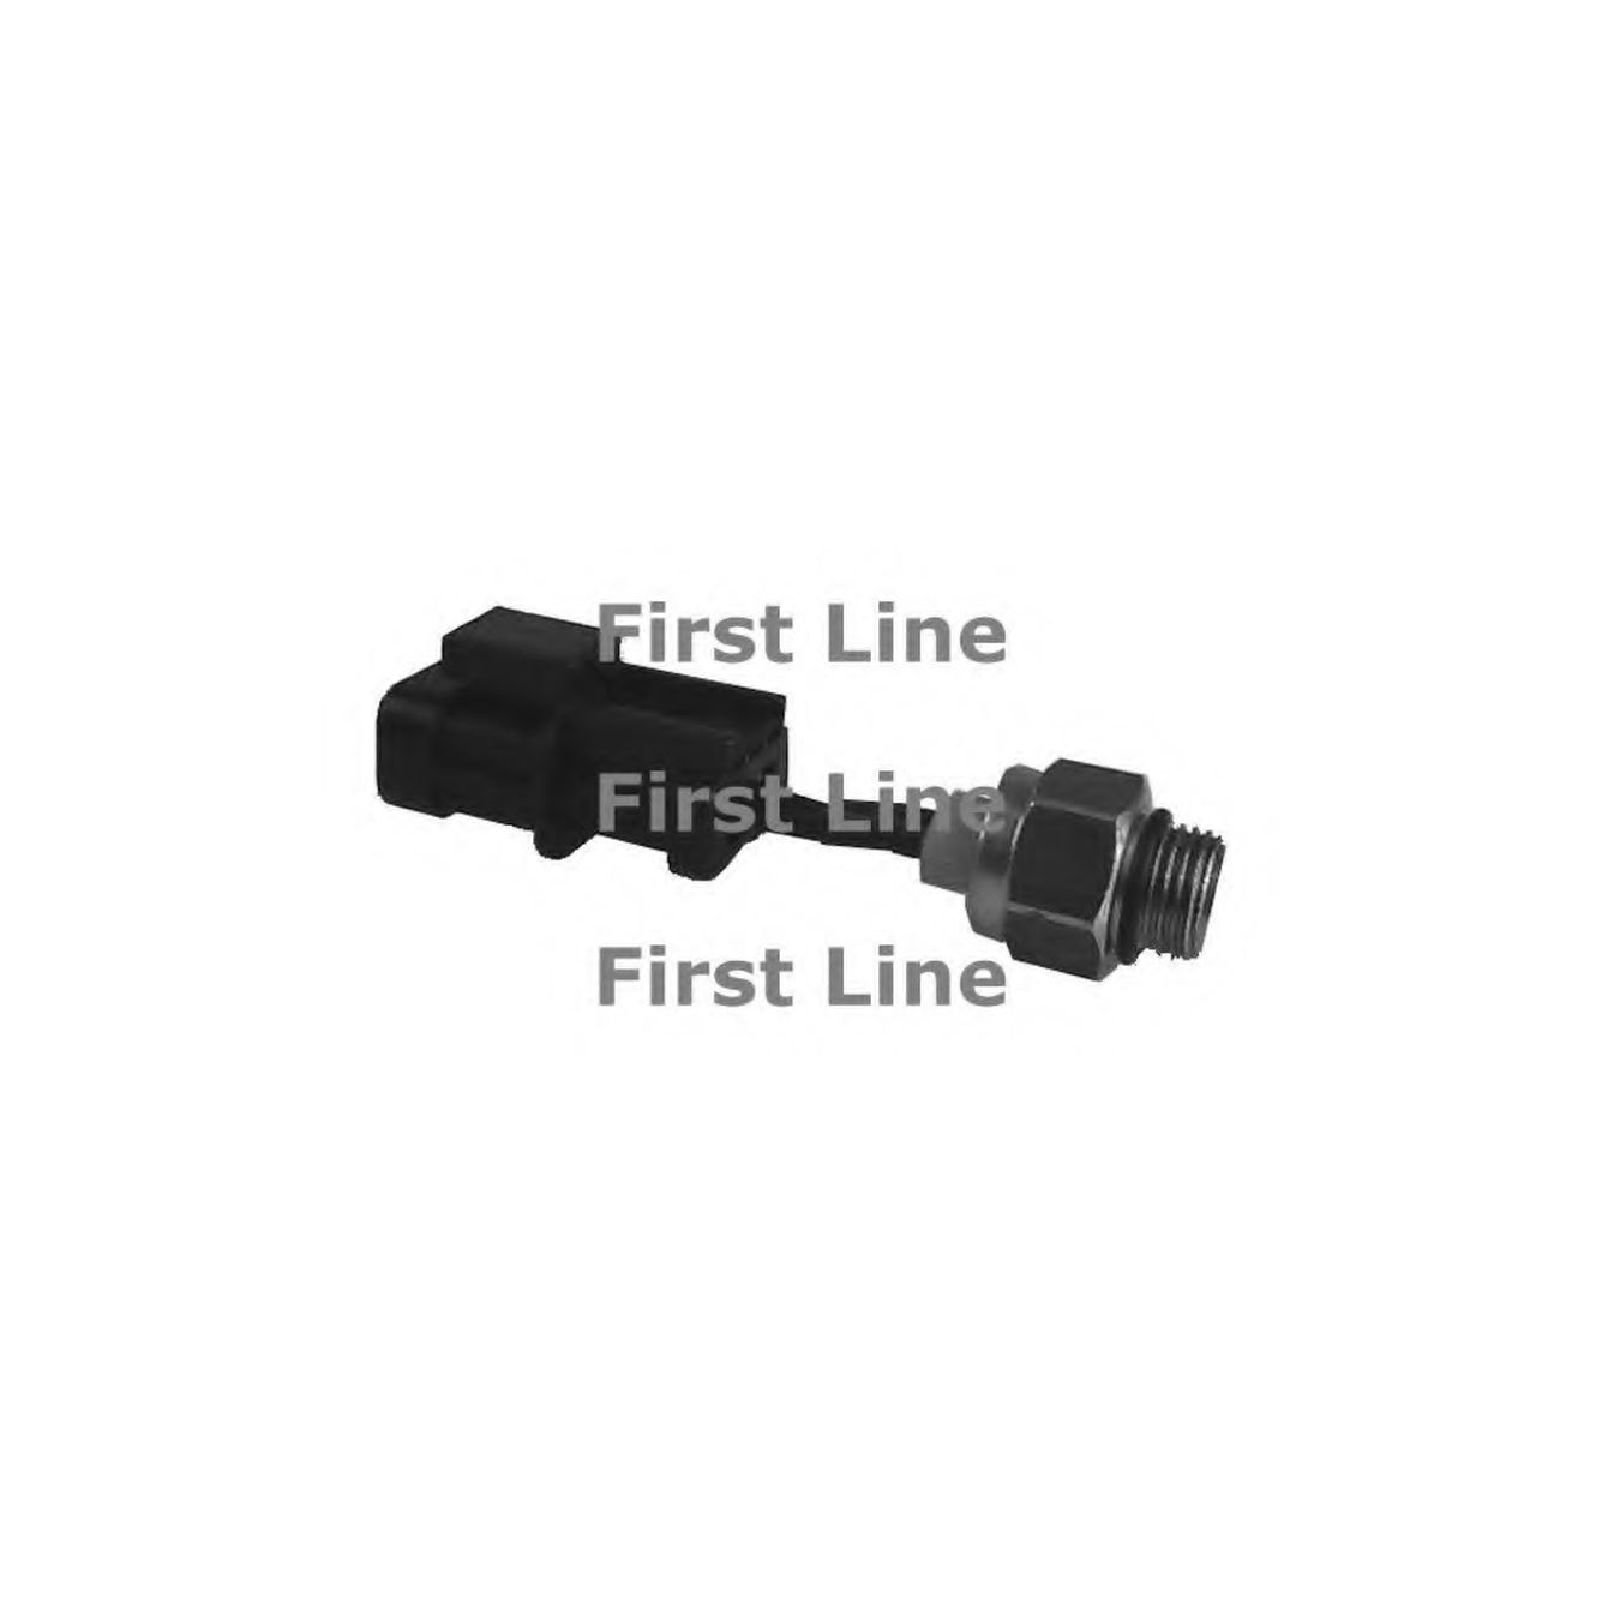 Electric Fan Not Kicking On Guide And Troubleshooting Of Wiring Escort Under Hood Fuse Box Diagram 300x213 1997 Ford Fits Nissan Maxima 3 0i Genuine First Line Radiator Cartoon